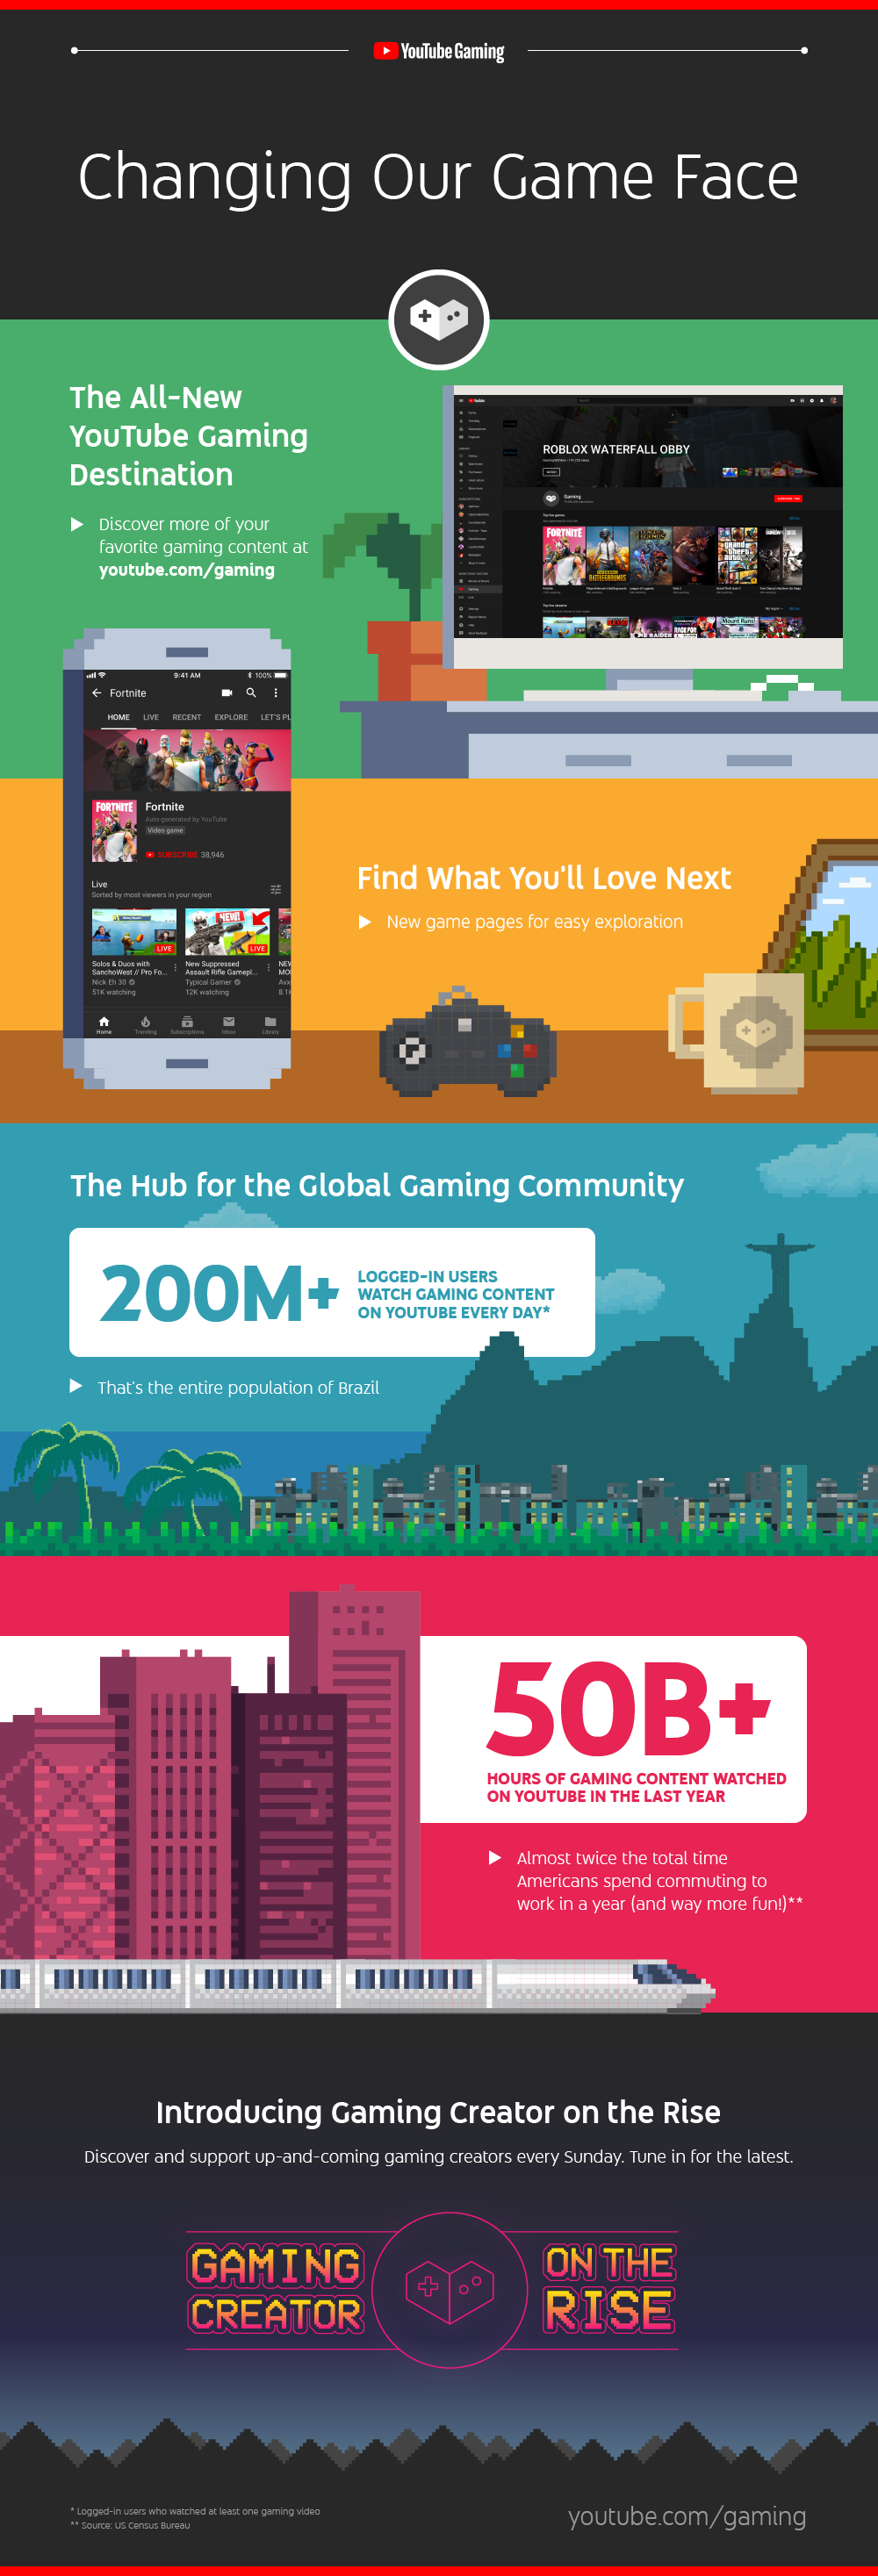 Gaming gets a new home on YouTube - infographic